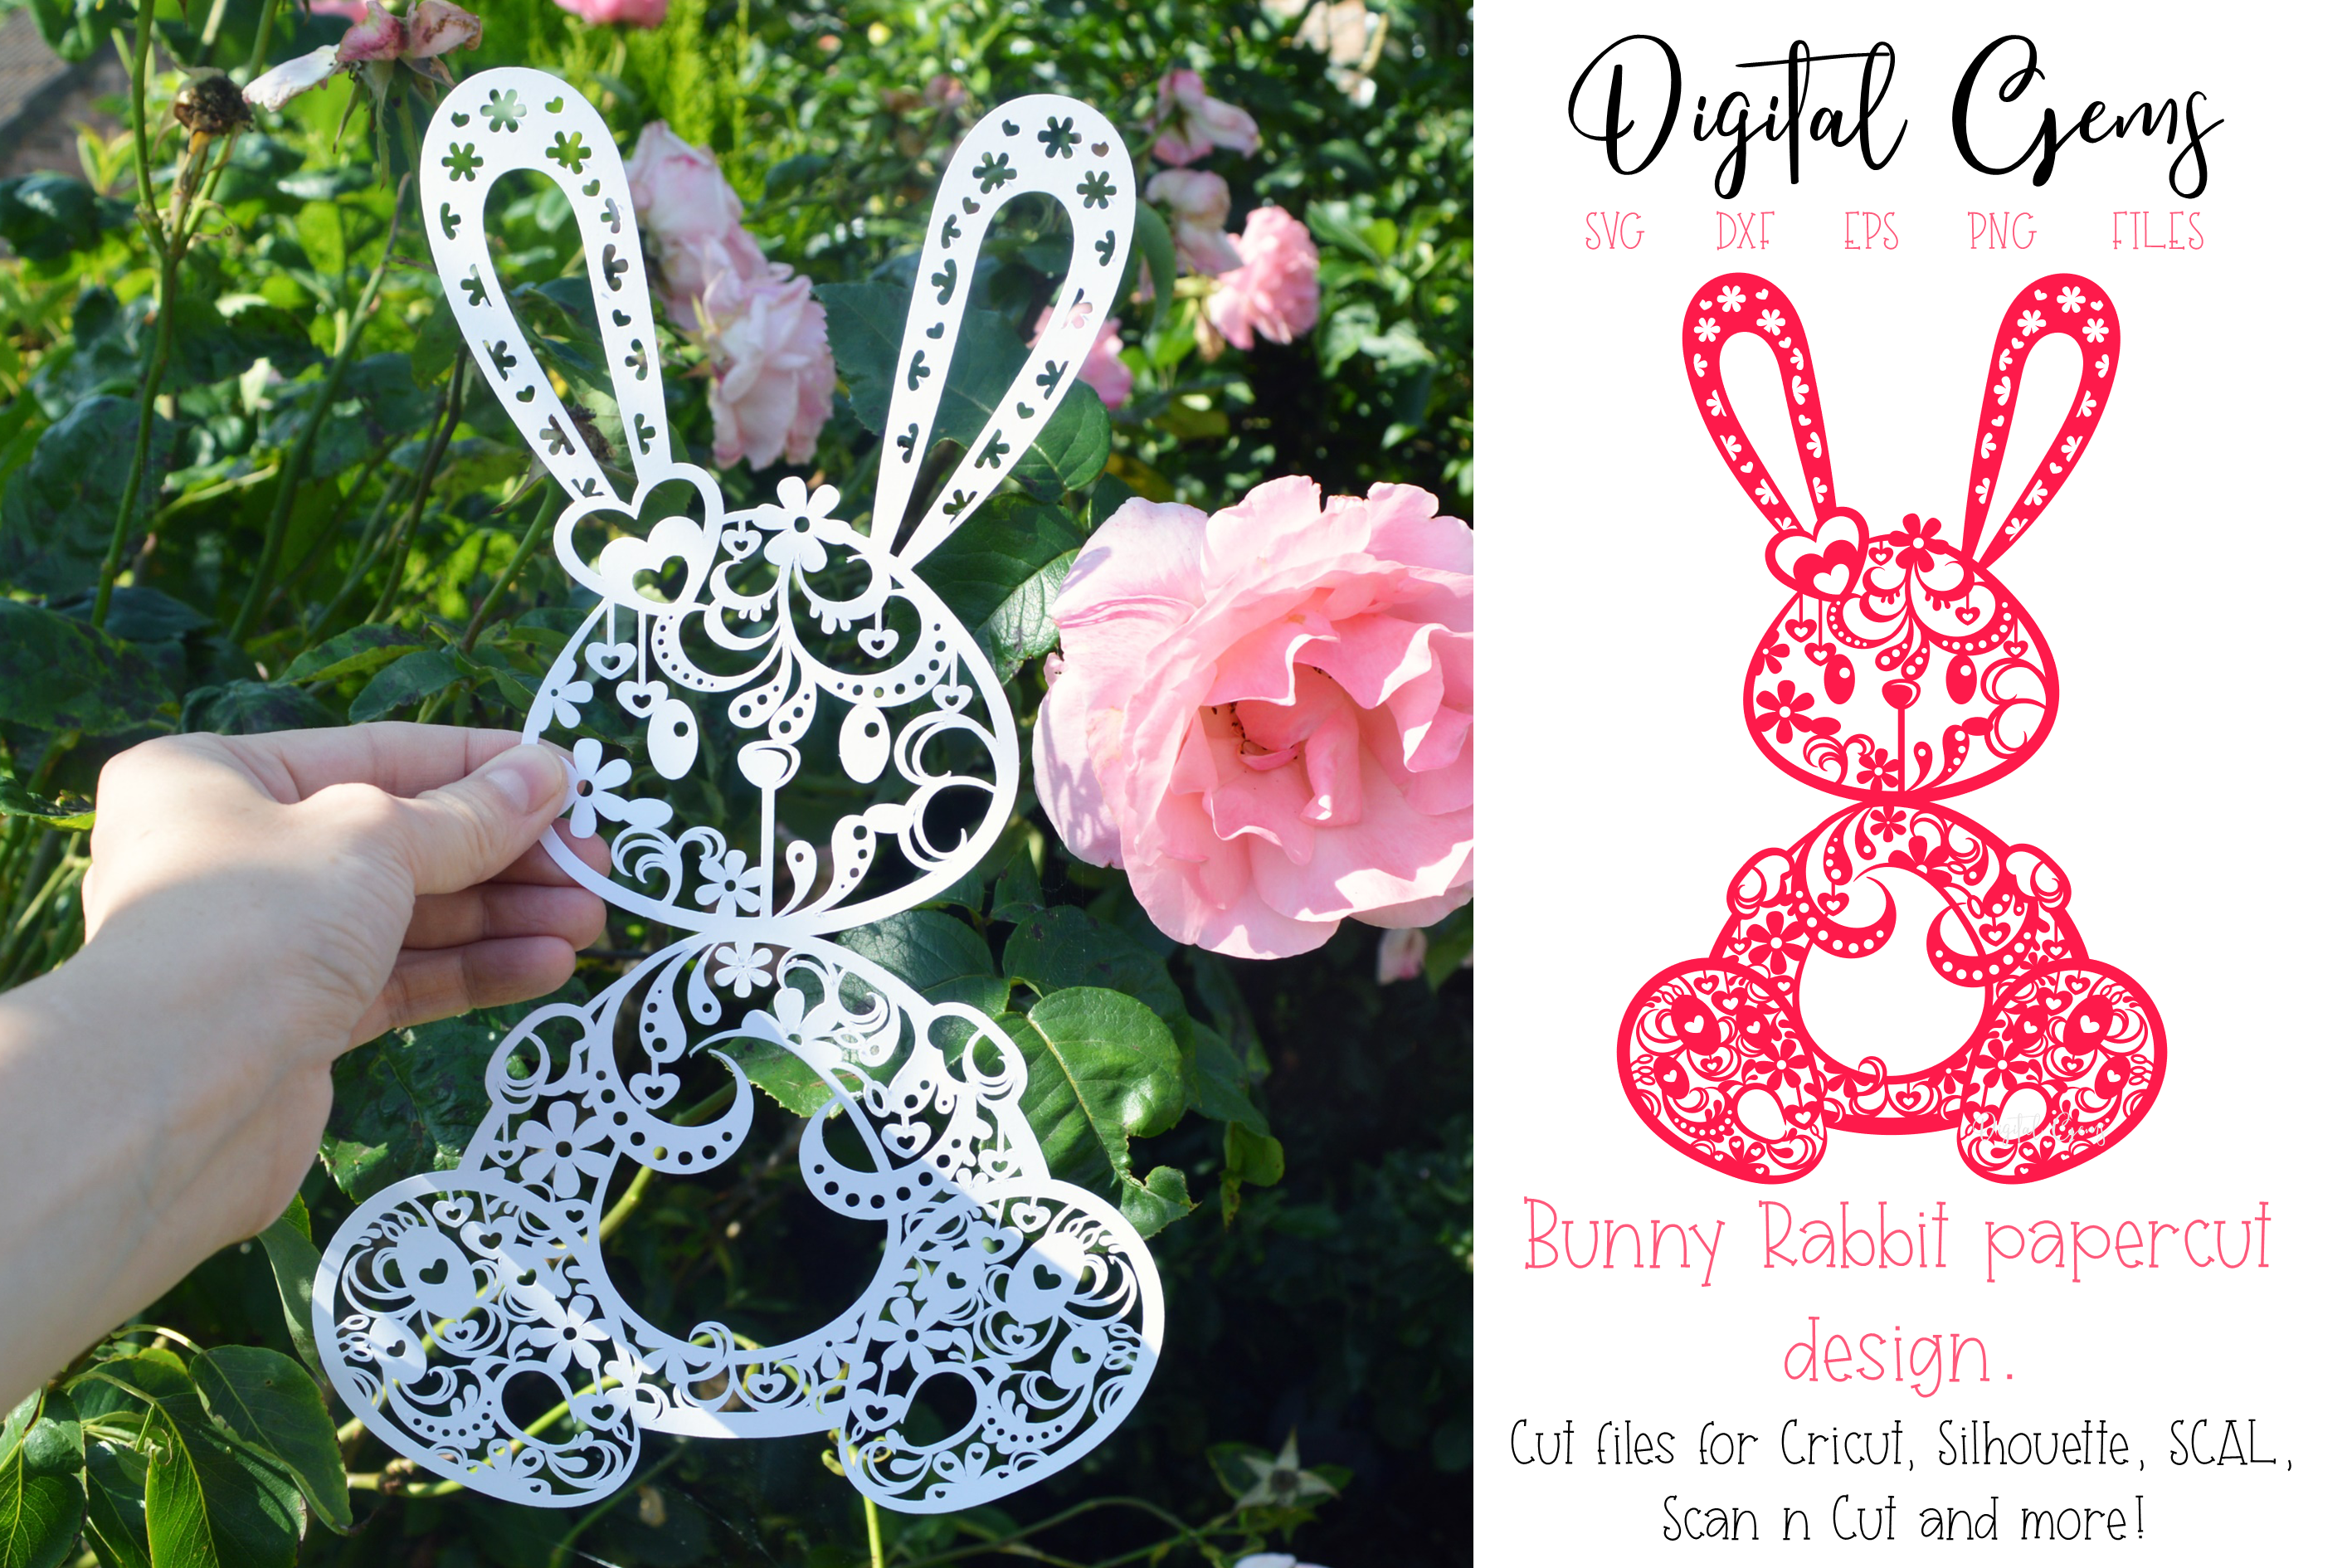 Rabbit paper cut design. SVG / DXF / EPS / PNG files example image 1